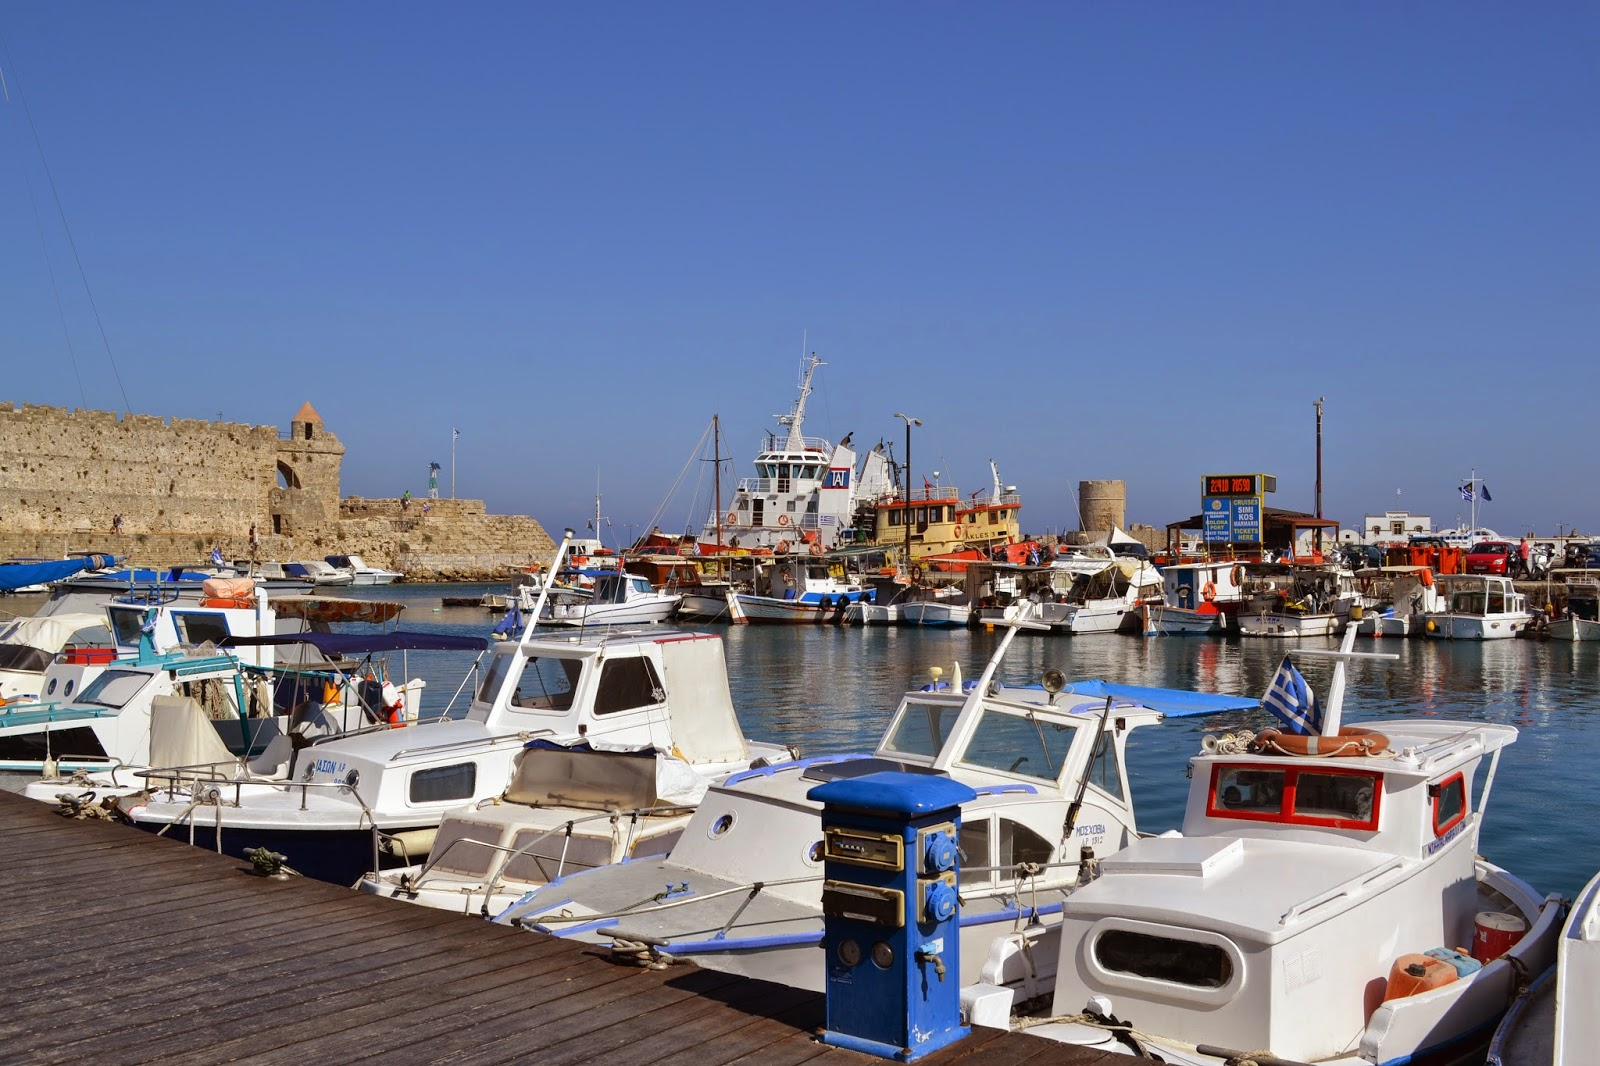 rhodes-old-town-harbour